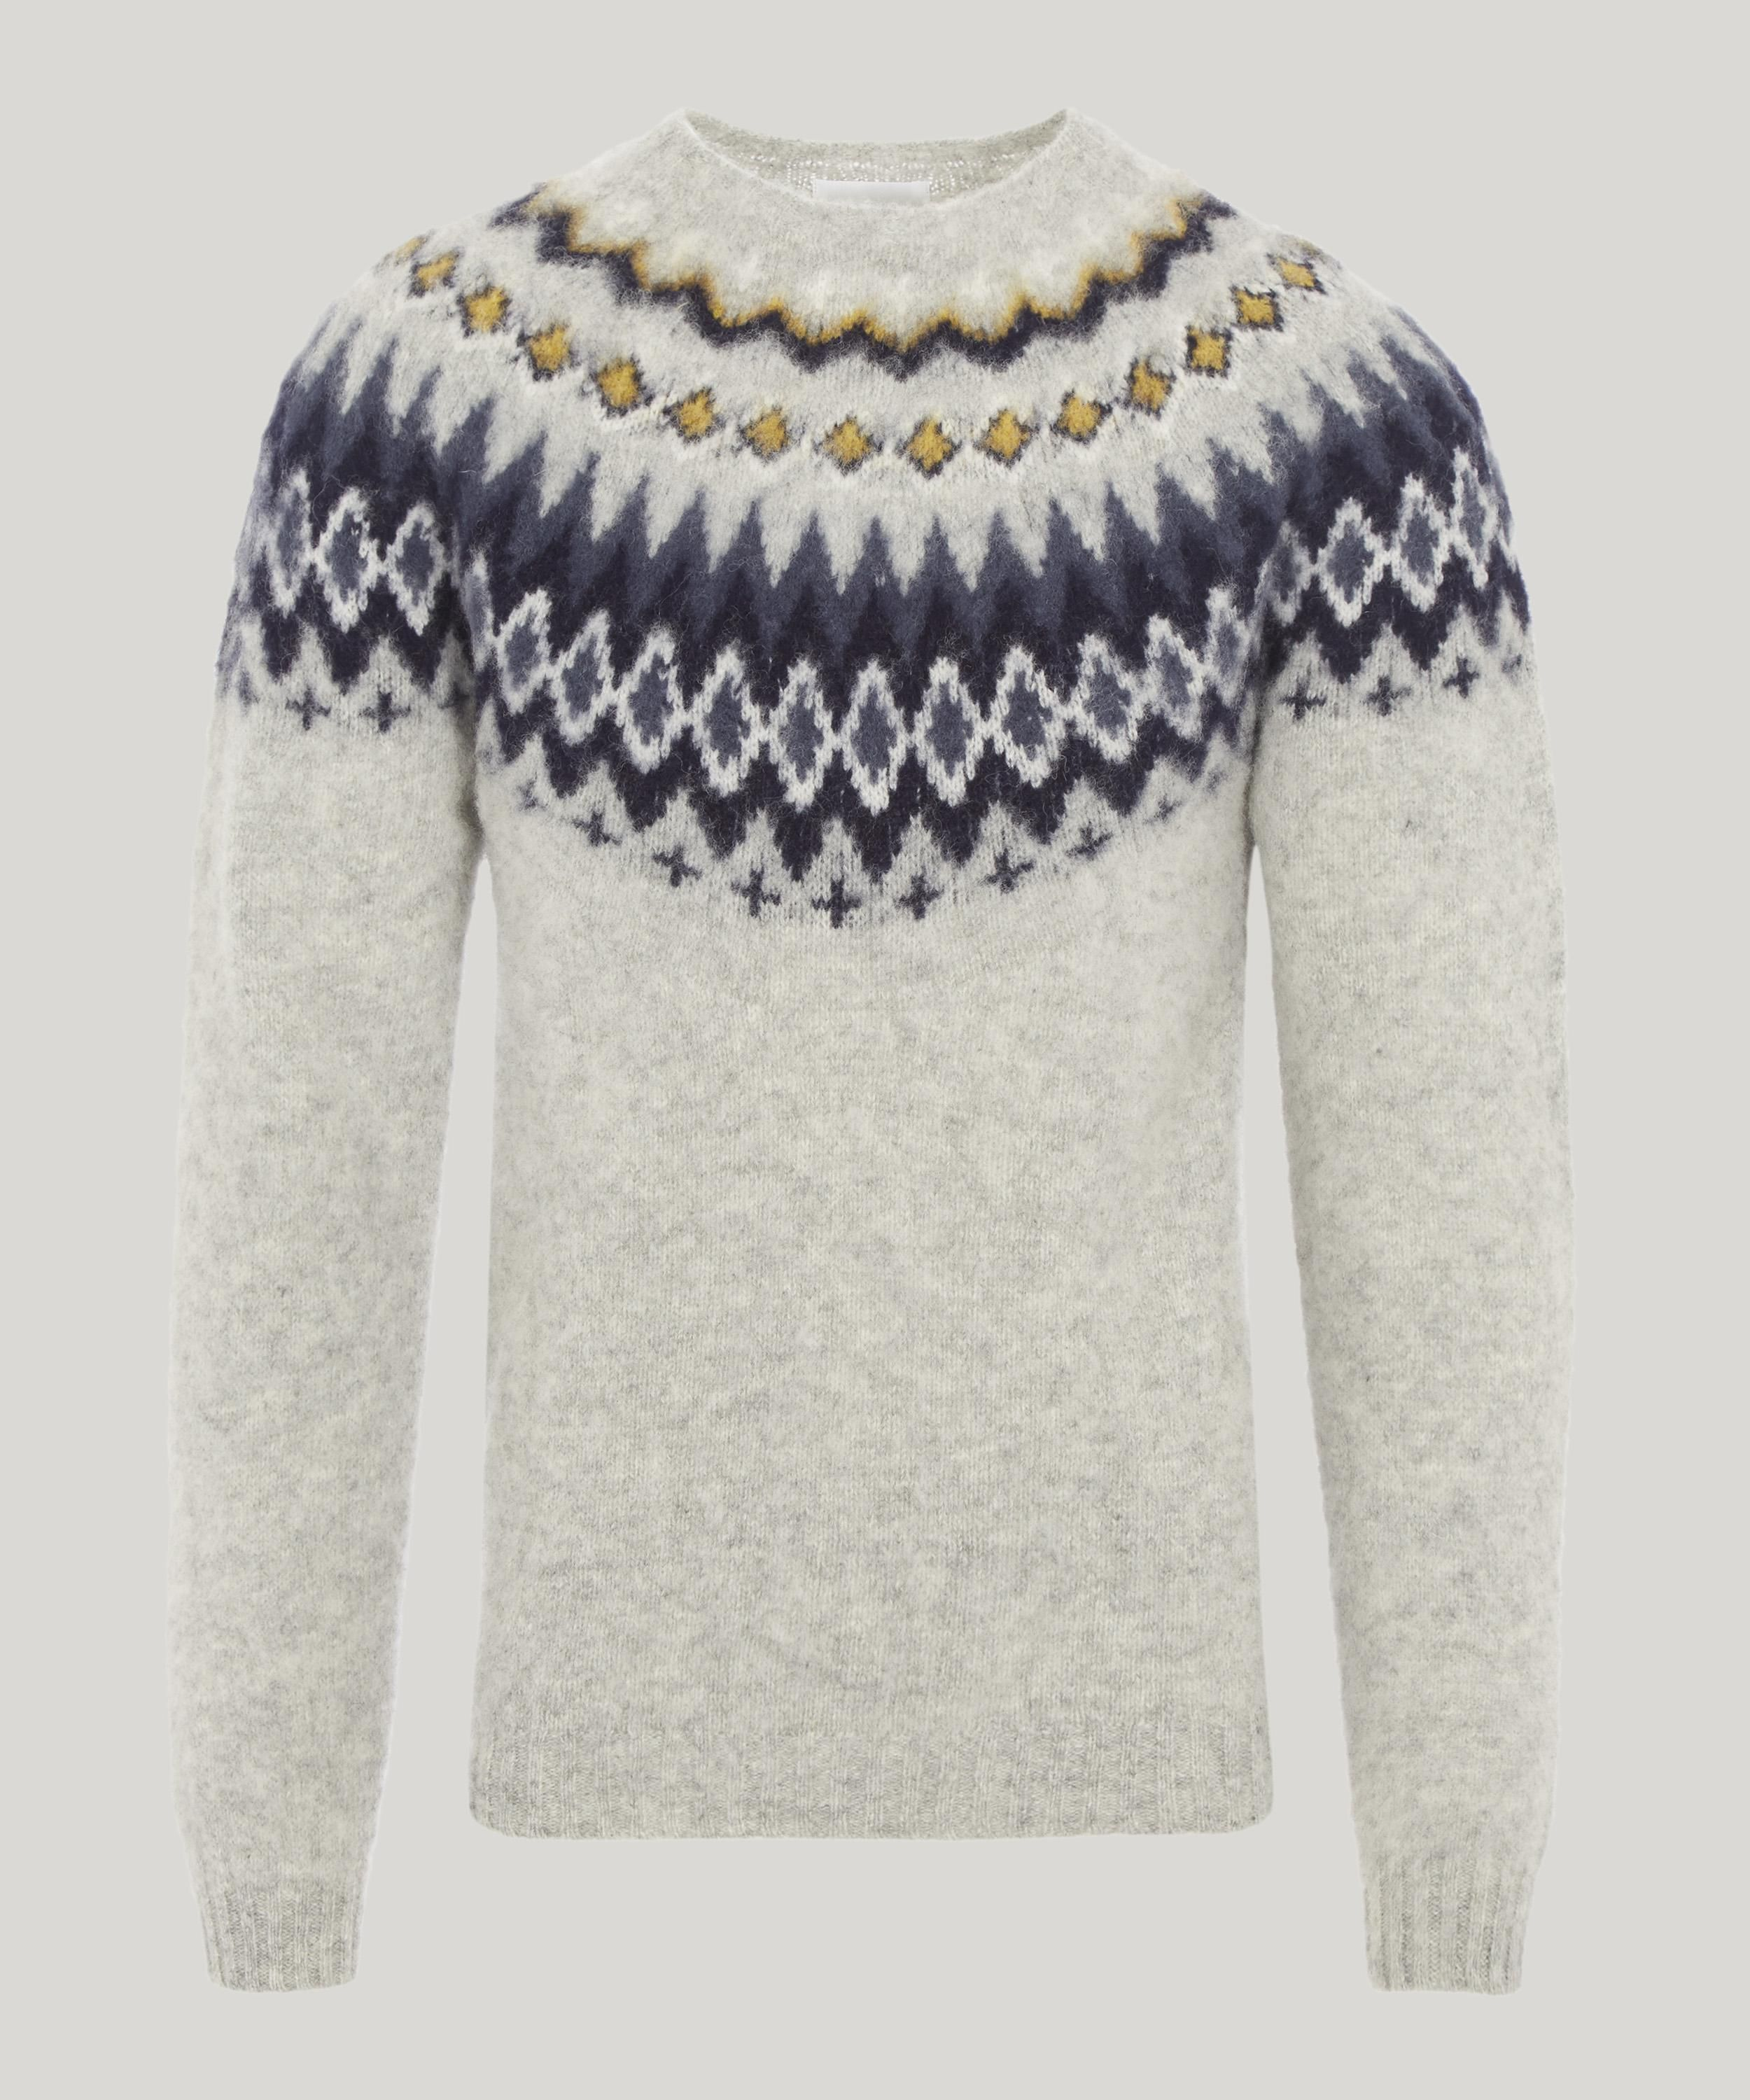 Liberty London jumper